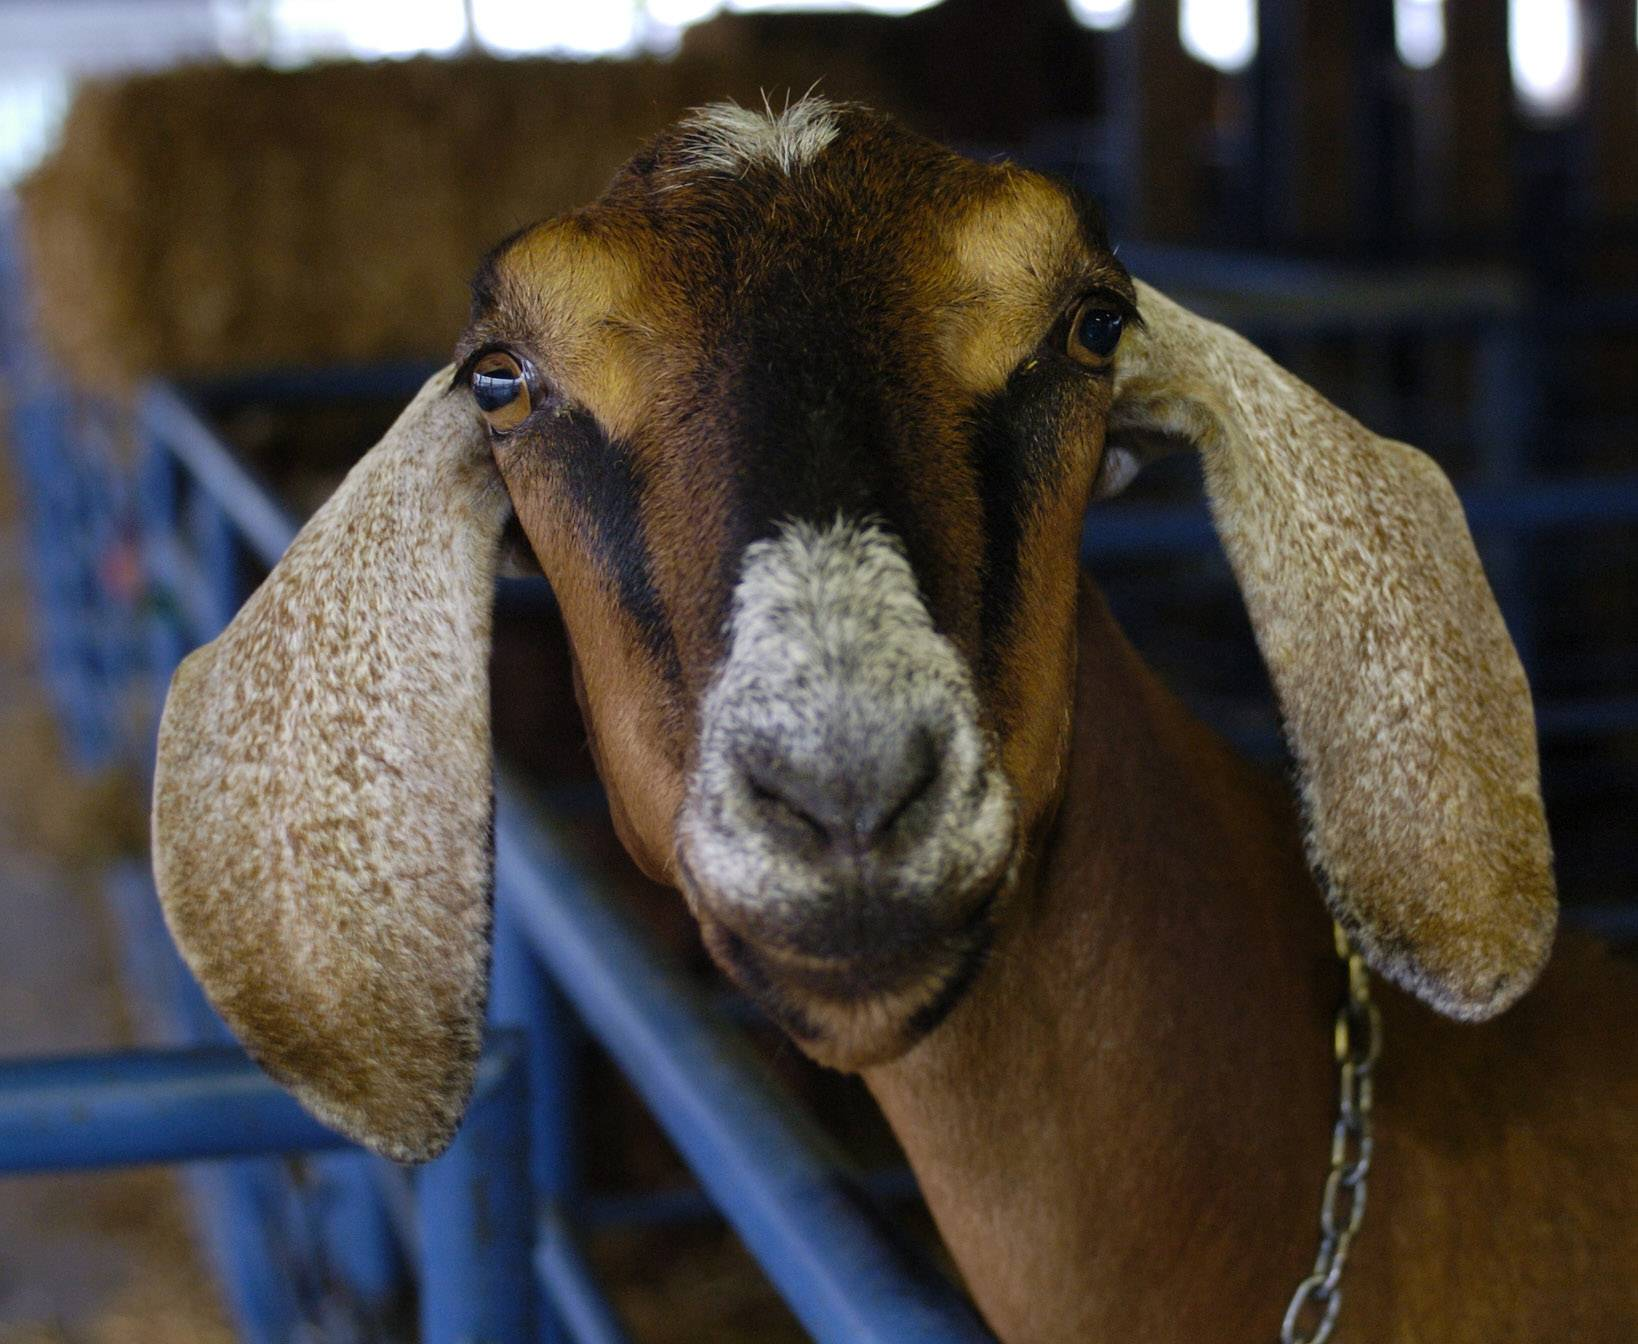 In attempt to break Cubs curse, Des Plaines aldermen OK goats at campground